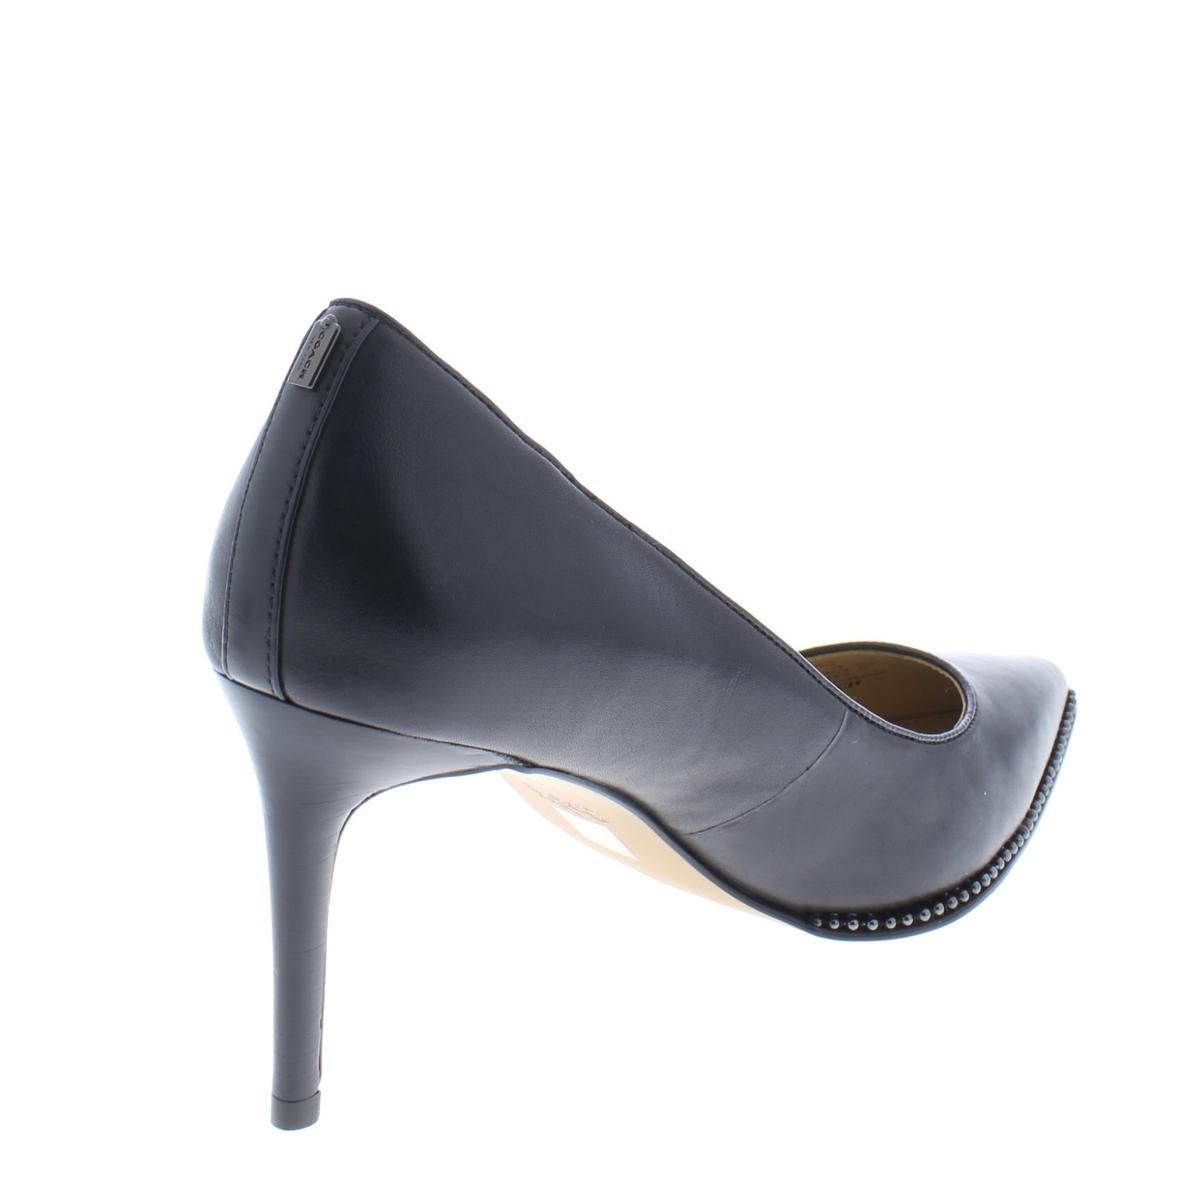 94e36293bce0 Shop Coach Womens Vonna Dress Heels Leather Pointed Toe - Free Shipping  Today - Overstock.com - 21480674